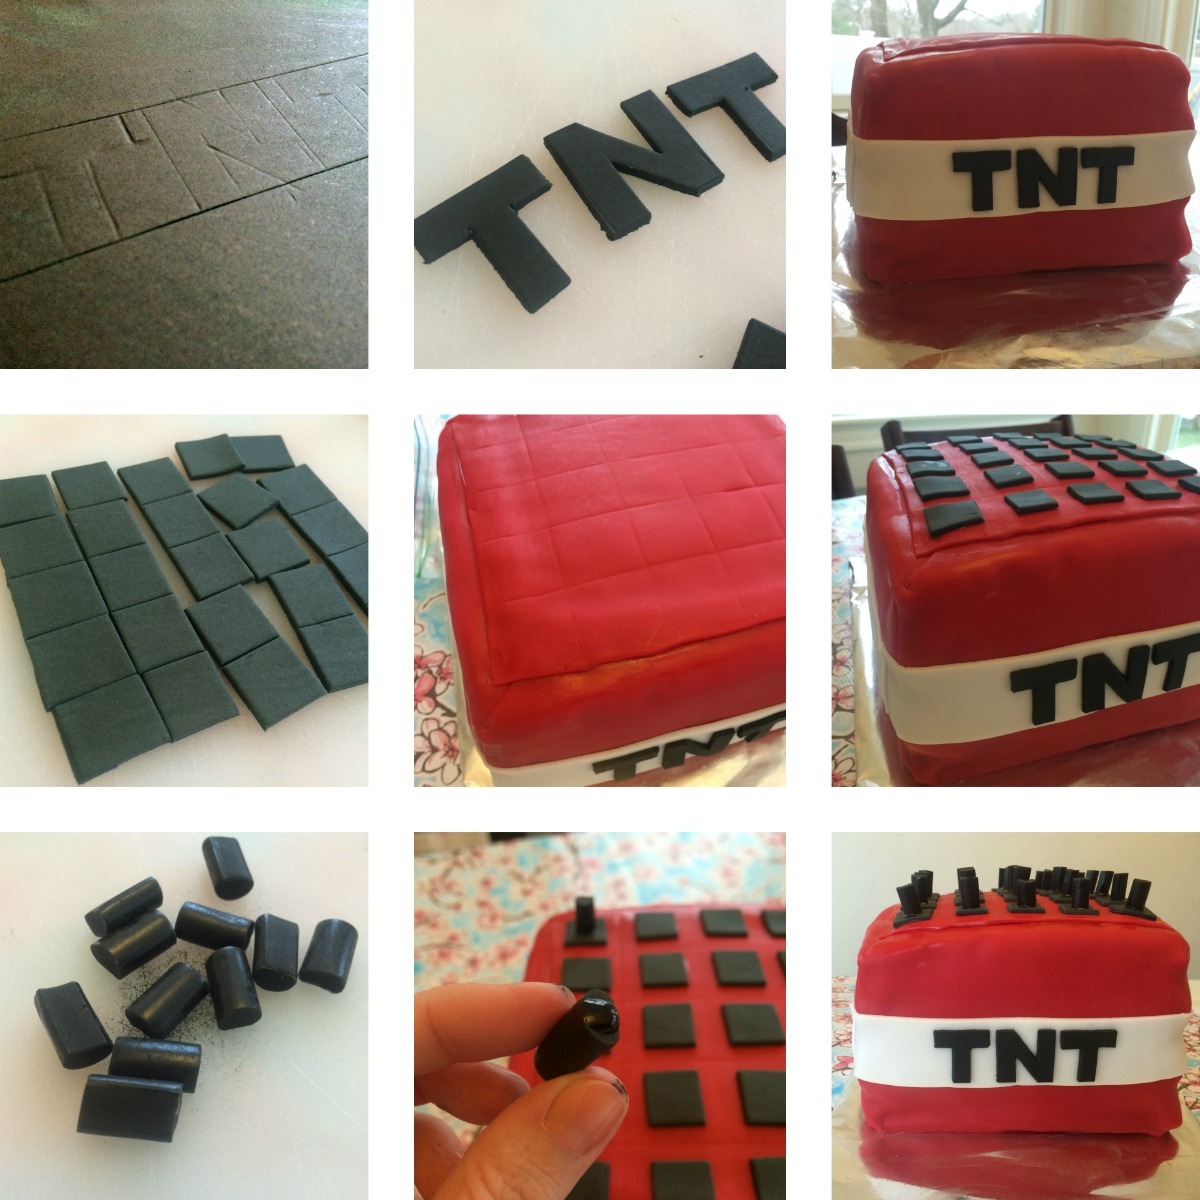 Minecraft TNT Cake Tutorial 5